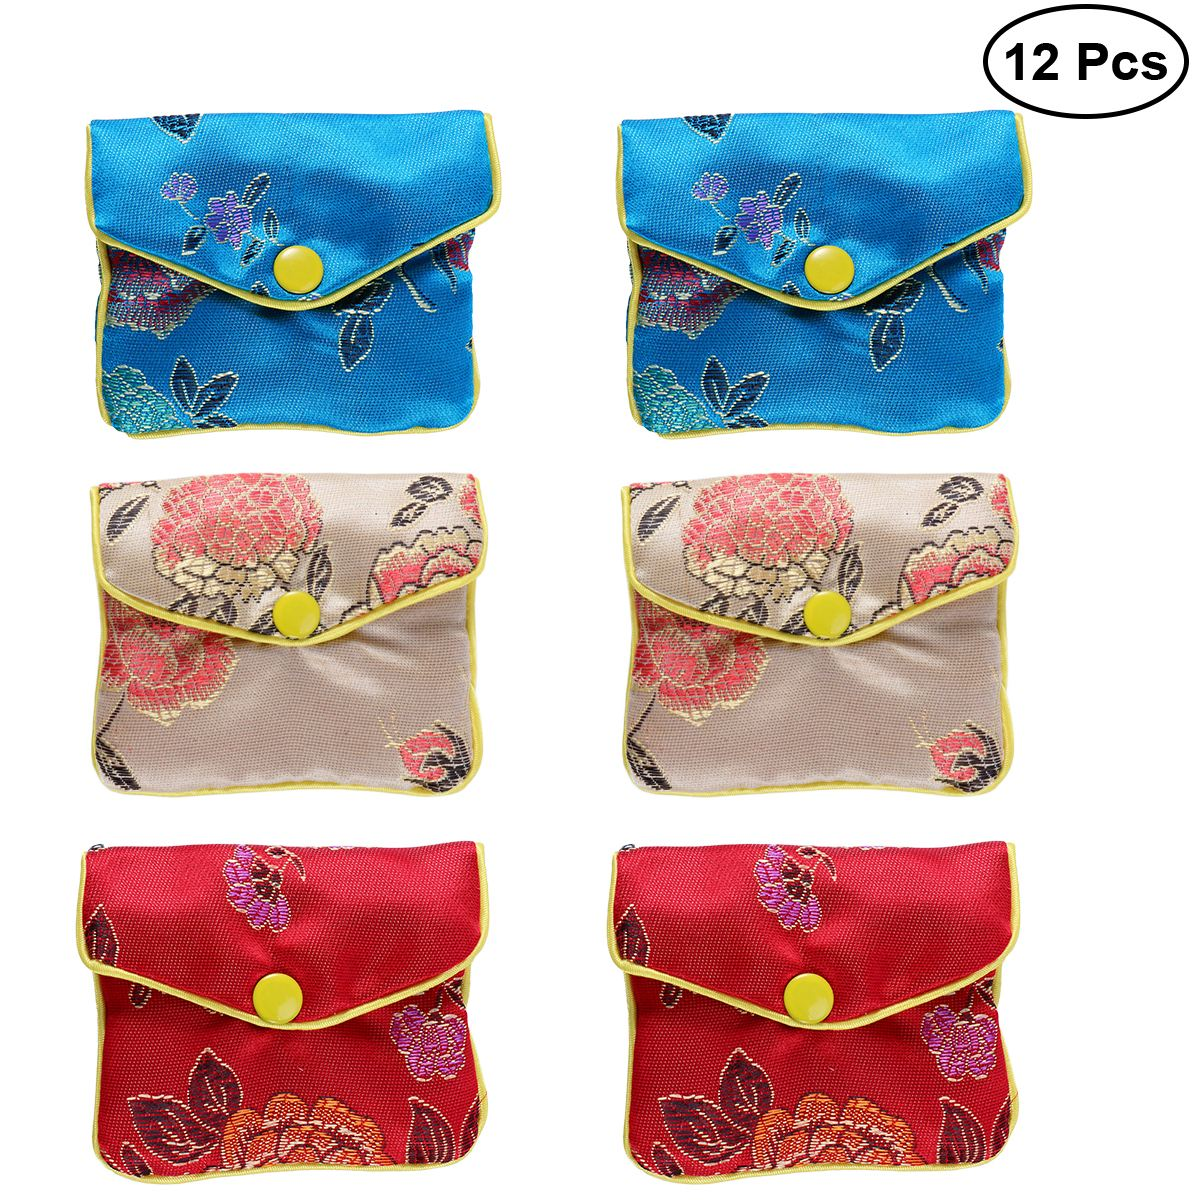 best tradition pouch brands and get free shipping - efb4eajd